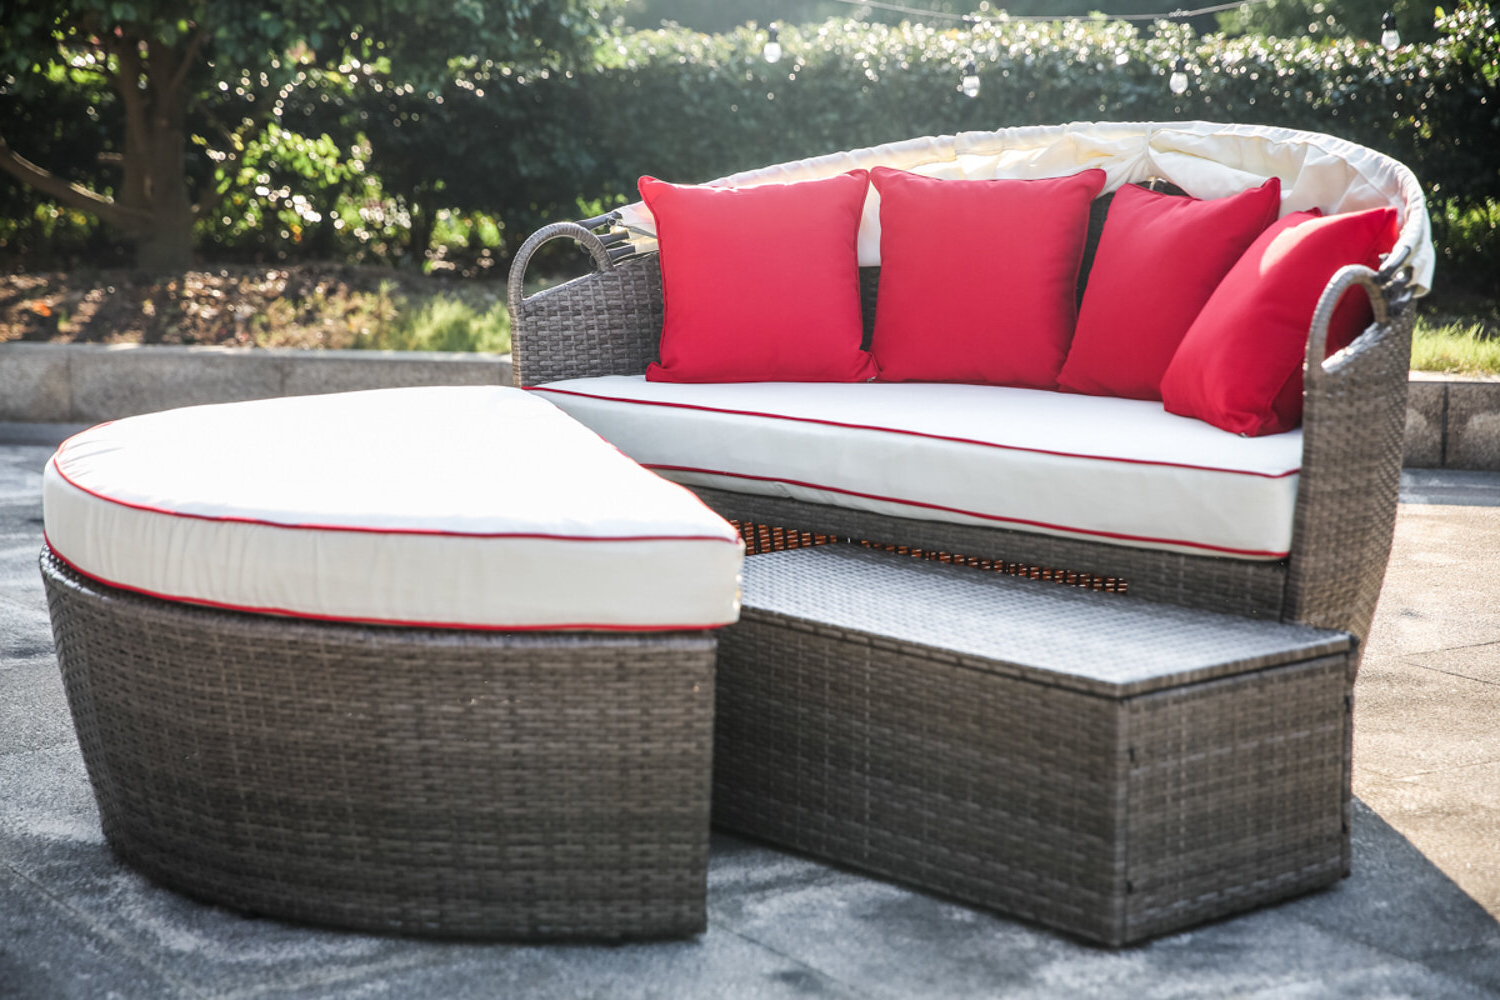 Fansler Patio Daybed With Cushions Throughout Well Liked Harlow Patio Daybeds With Cushions (View 5 of 20)